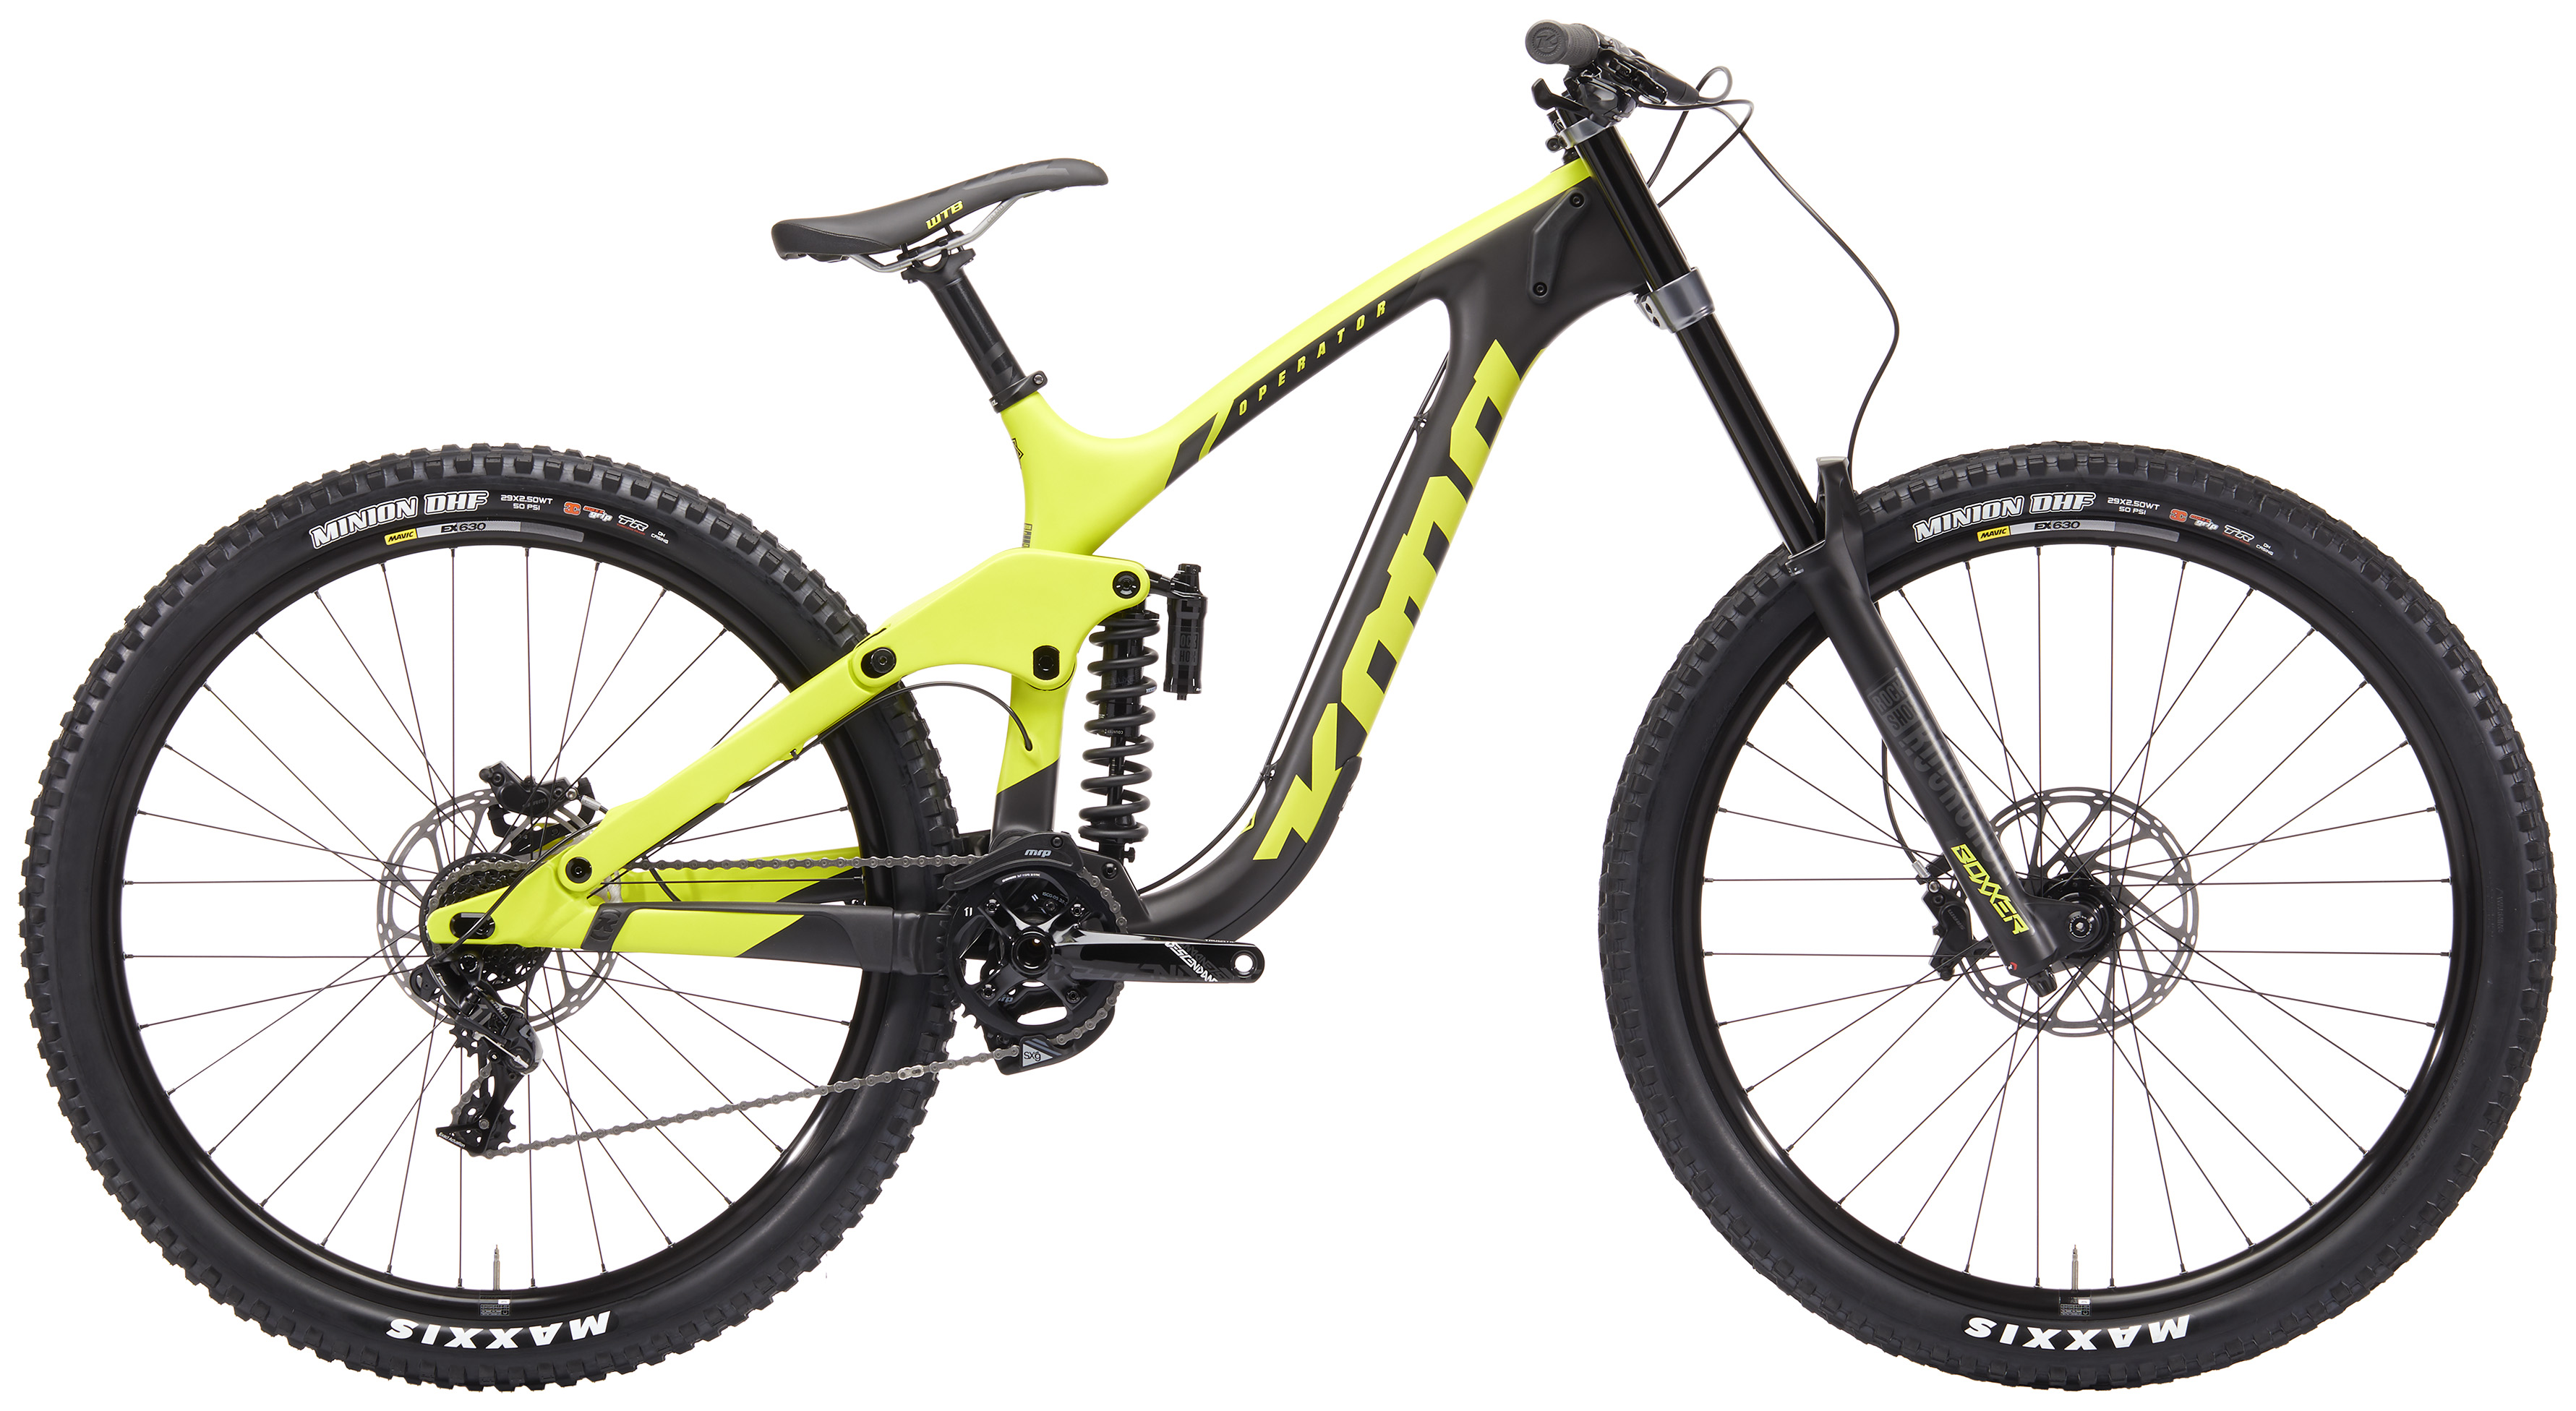 Mountain Bike Action Reviews the Operator CR